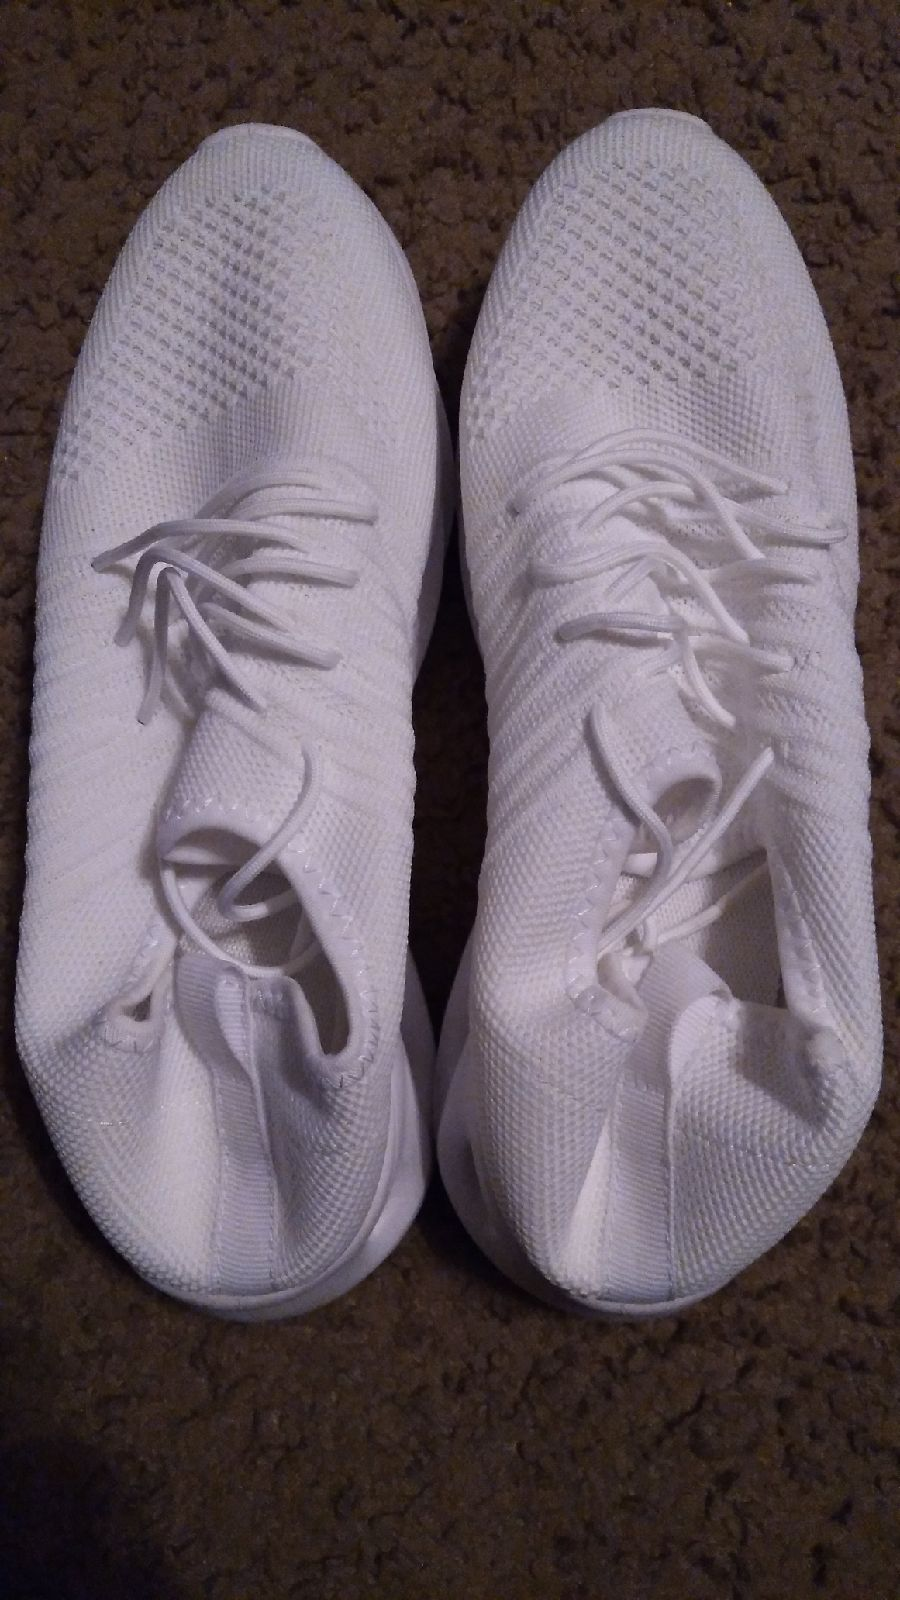 Womens shoes white unbranded New